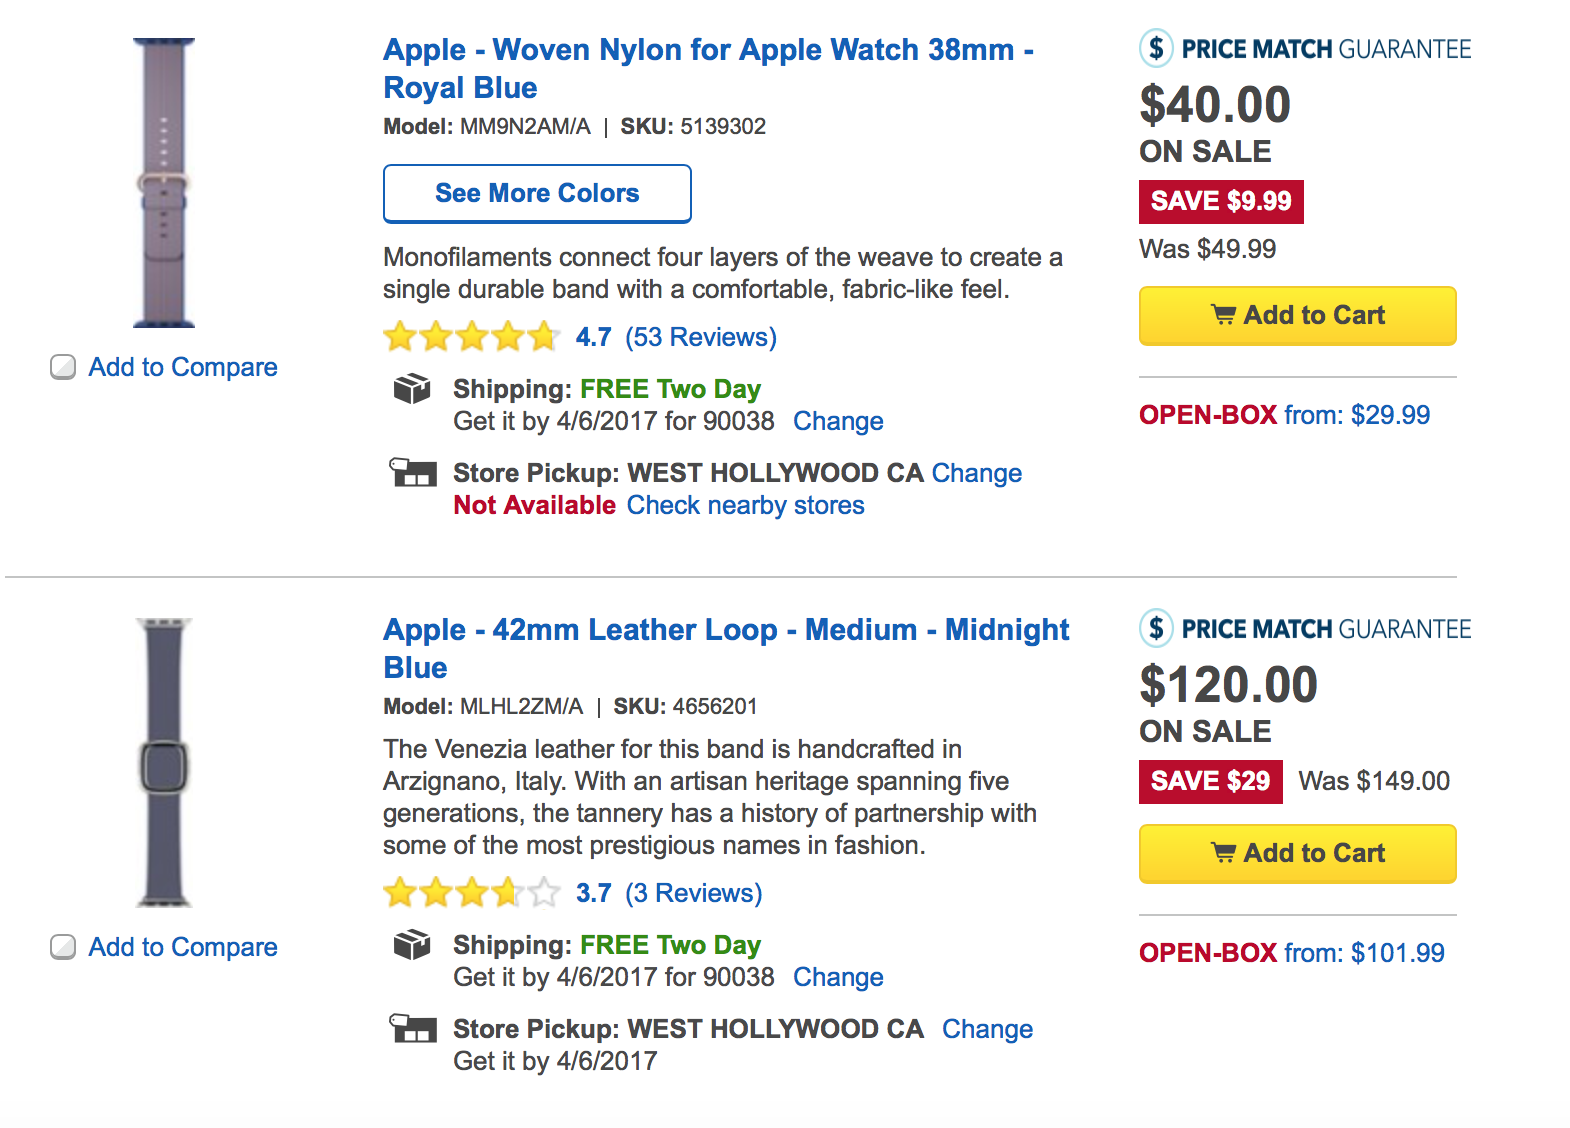 Apple Watch Band Sale at Best Buy Today